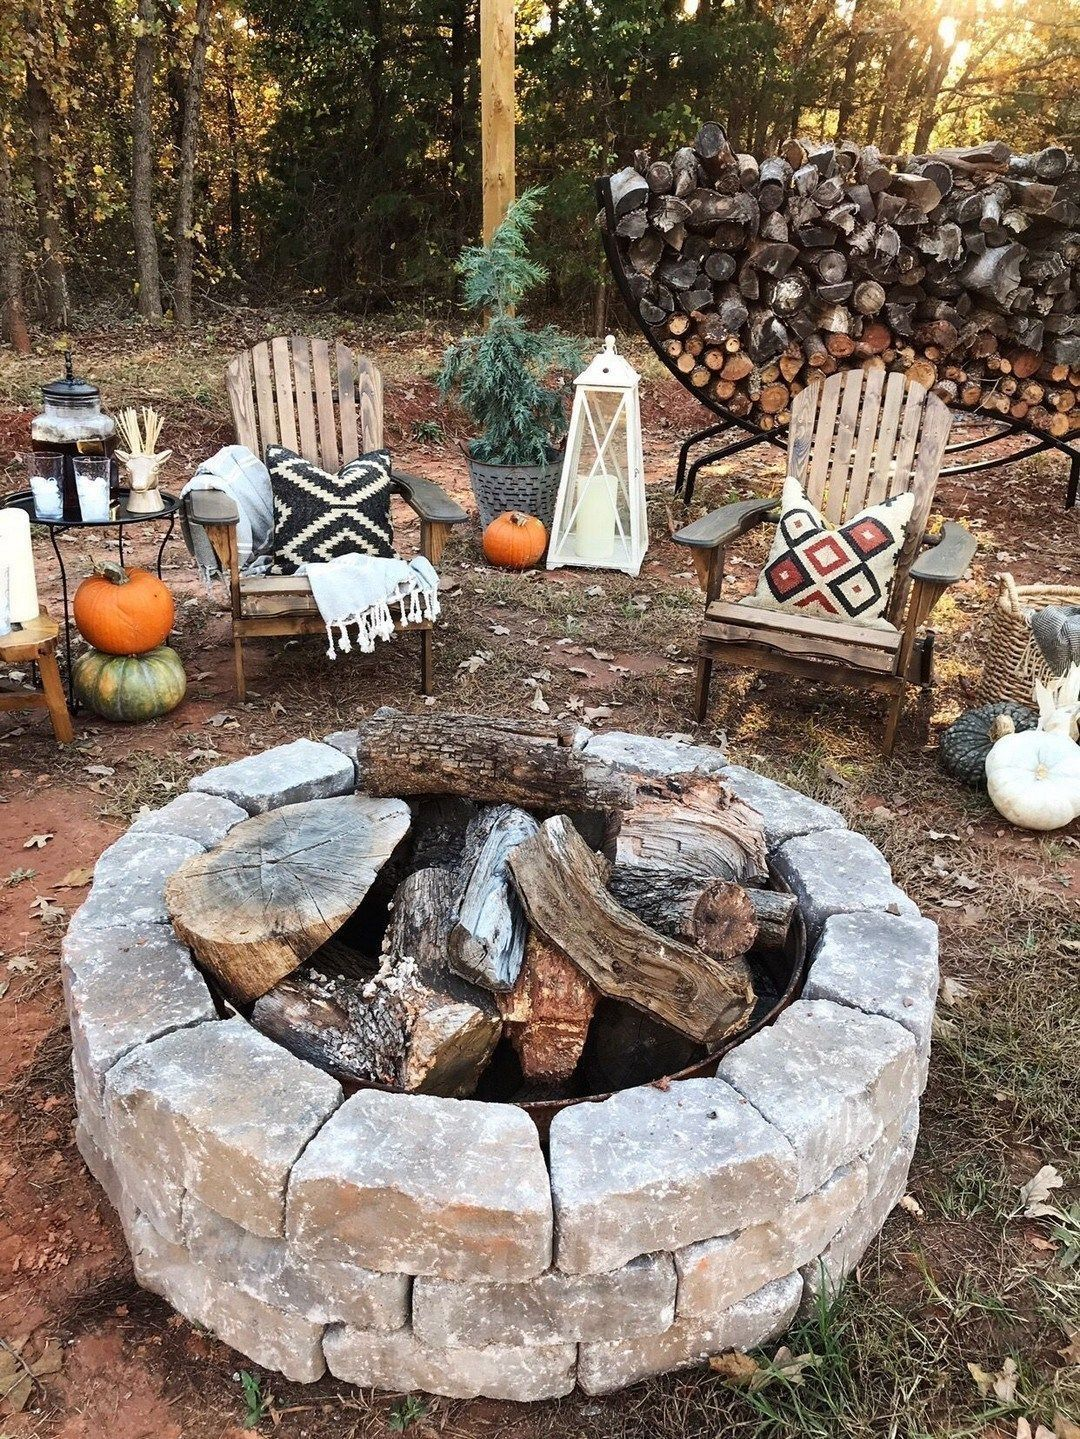 25 Ways To Make Simple DIY Fire Pit In Your Backyard